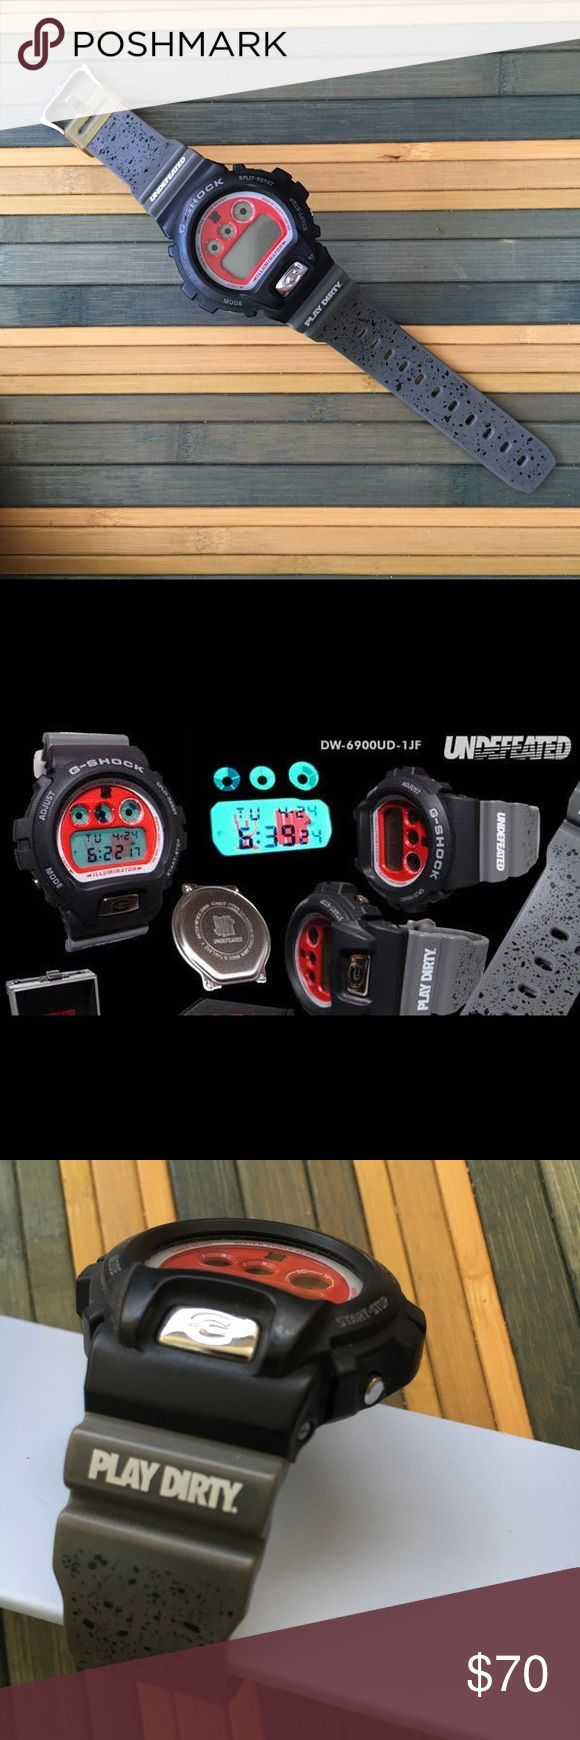 G Shock + Undefeated limited edition collab Undefeated x Casio G-Shock limited edition callob DW6900 it comes with the UNDFTD logos in the backlight NO Original metal case/ manuals.  Battery is dead and must be replaced G Shock Accessories Watches